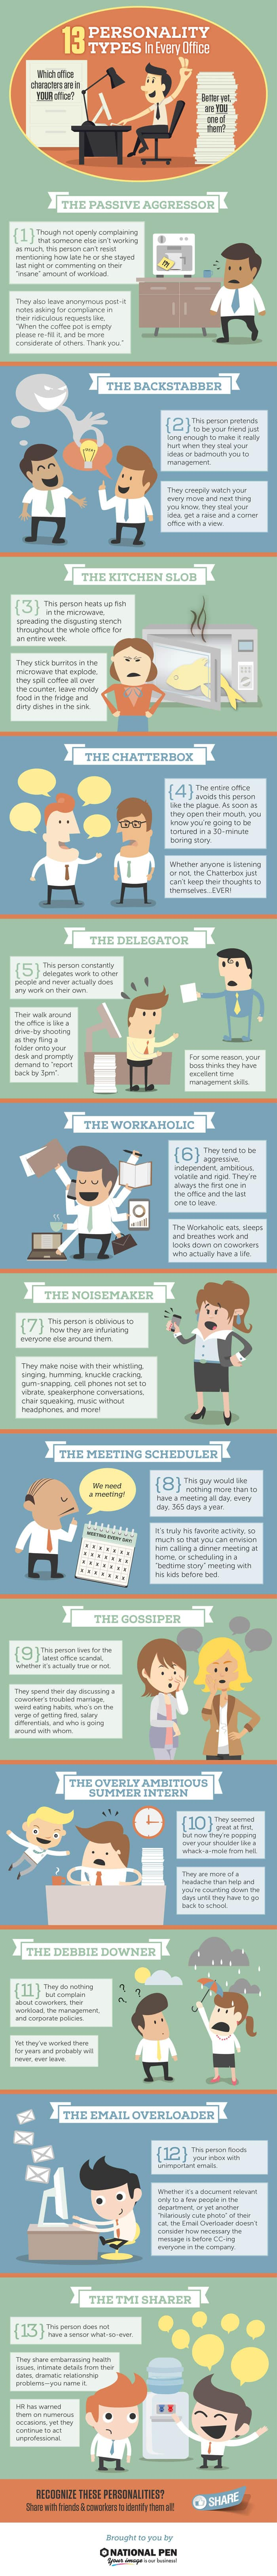 OfficePersonalitiesInfographic